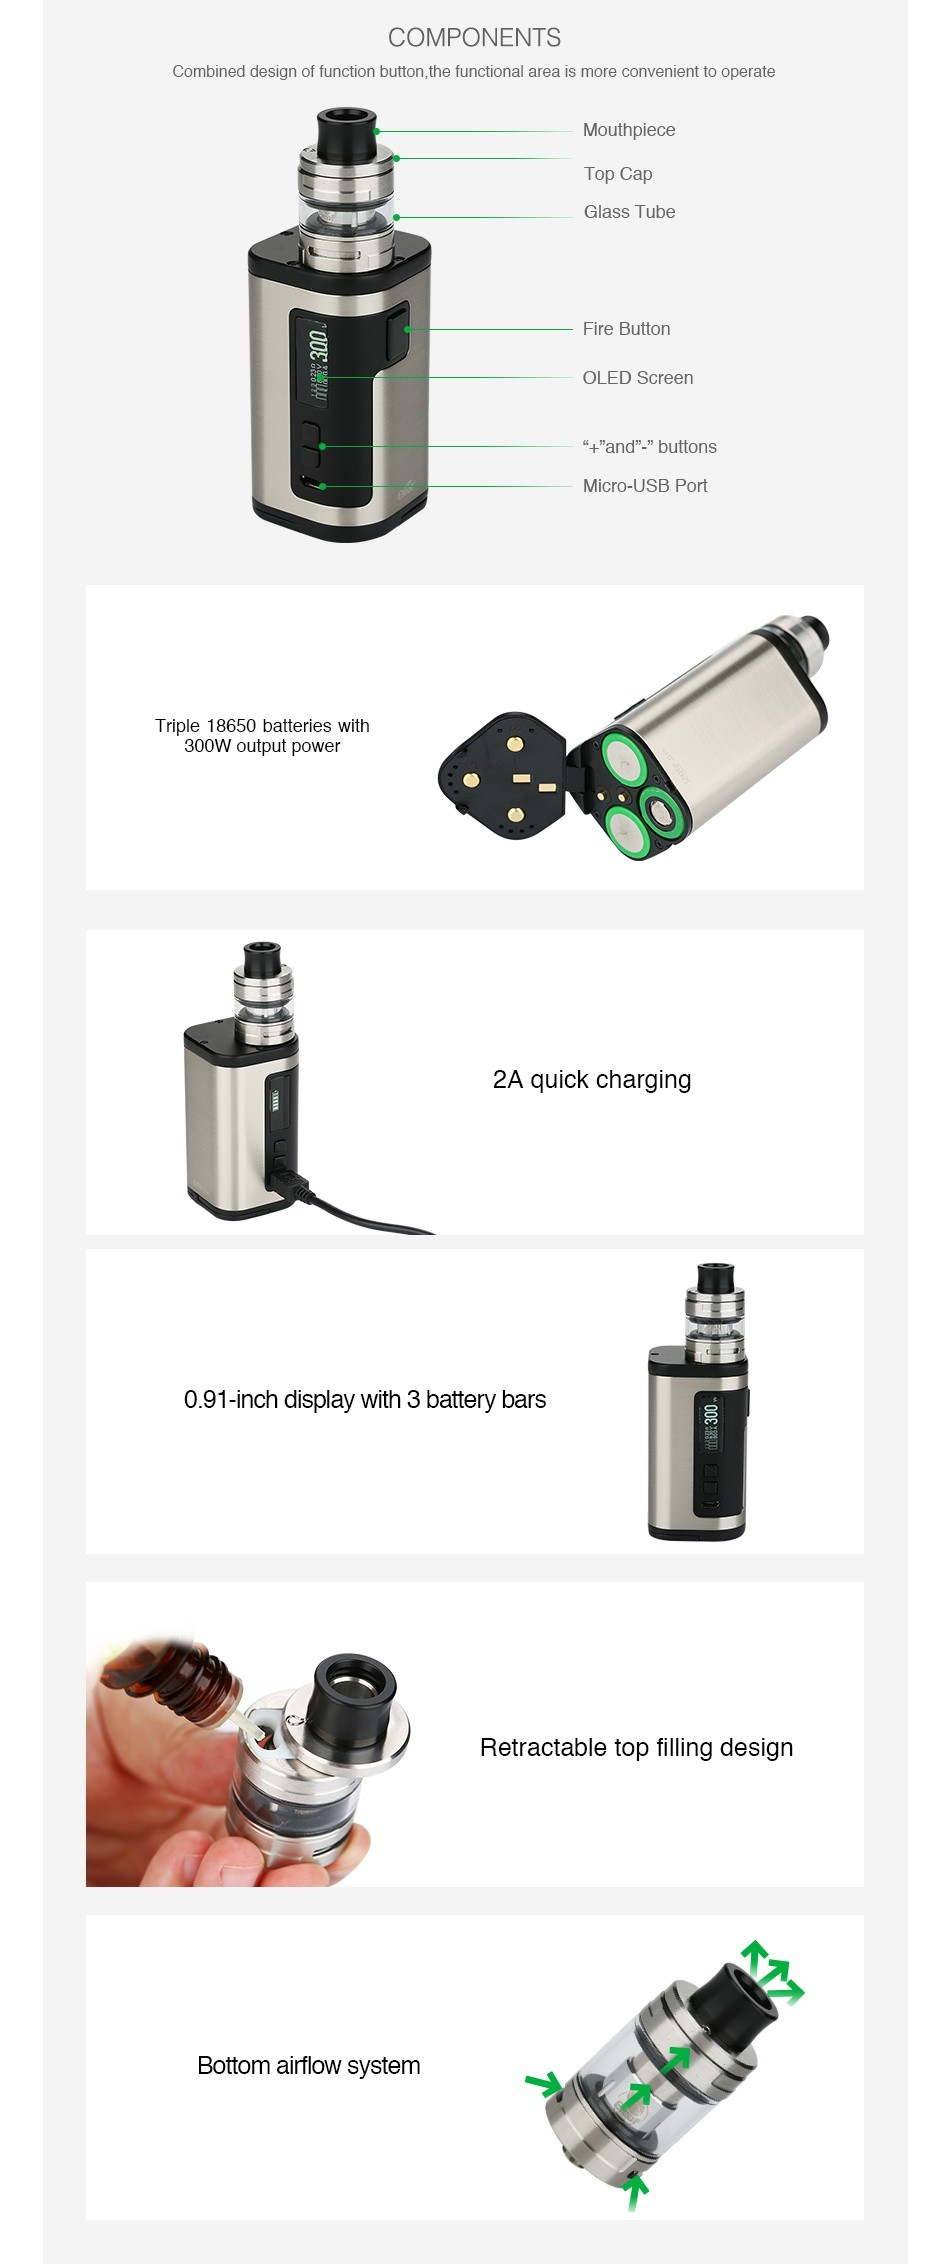 Eleaf iStick Tria 300W Kit with ELLO S COMPONENTS Combined design of function button  the functional area is more convenient to operate Mouthpiece op cap Glass tube Fire Button OLLD Screen  and  buttons Micro USB Purl Triple 18650 batteries with 300W output power 2A quick charging 0 91 inch display with 3 battery bars Retractable top filling design Bottom airflow system